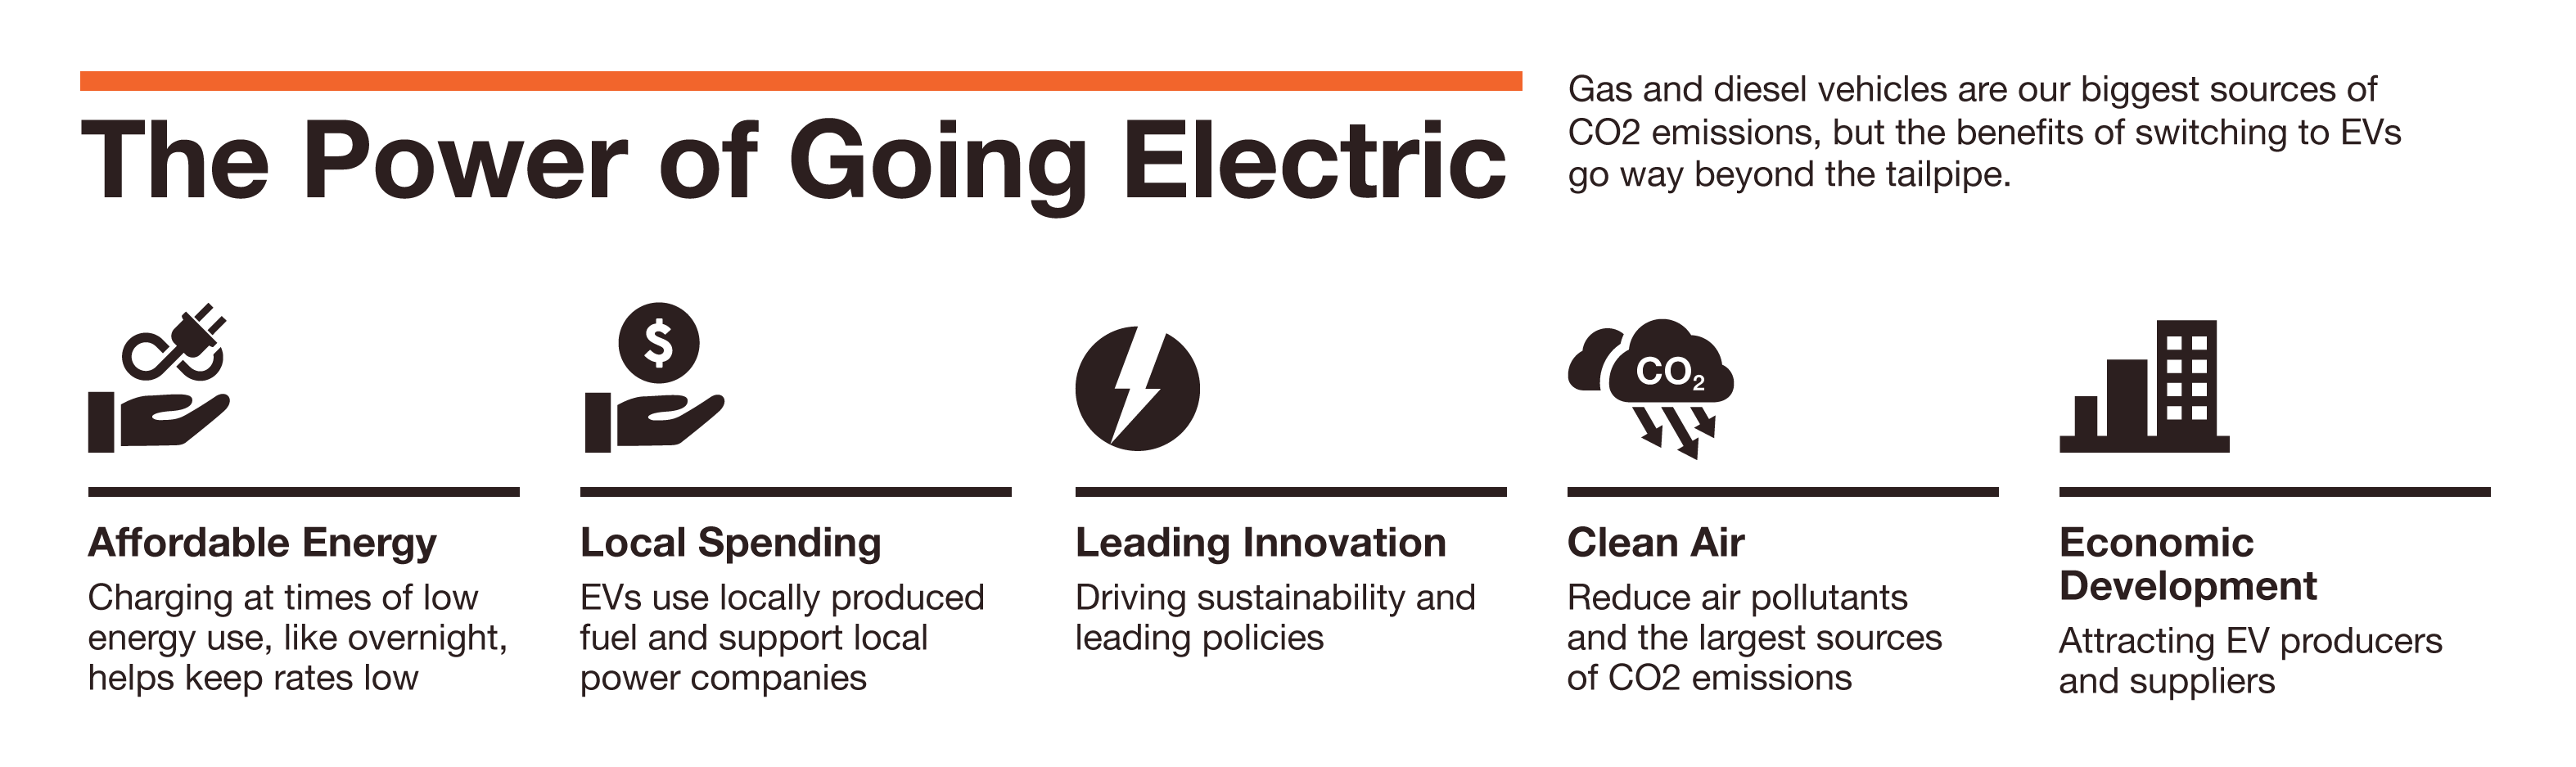 infographic power of going electric